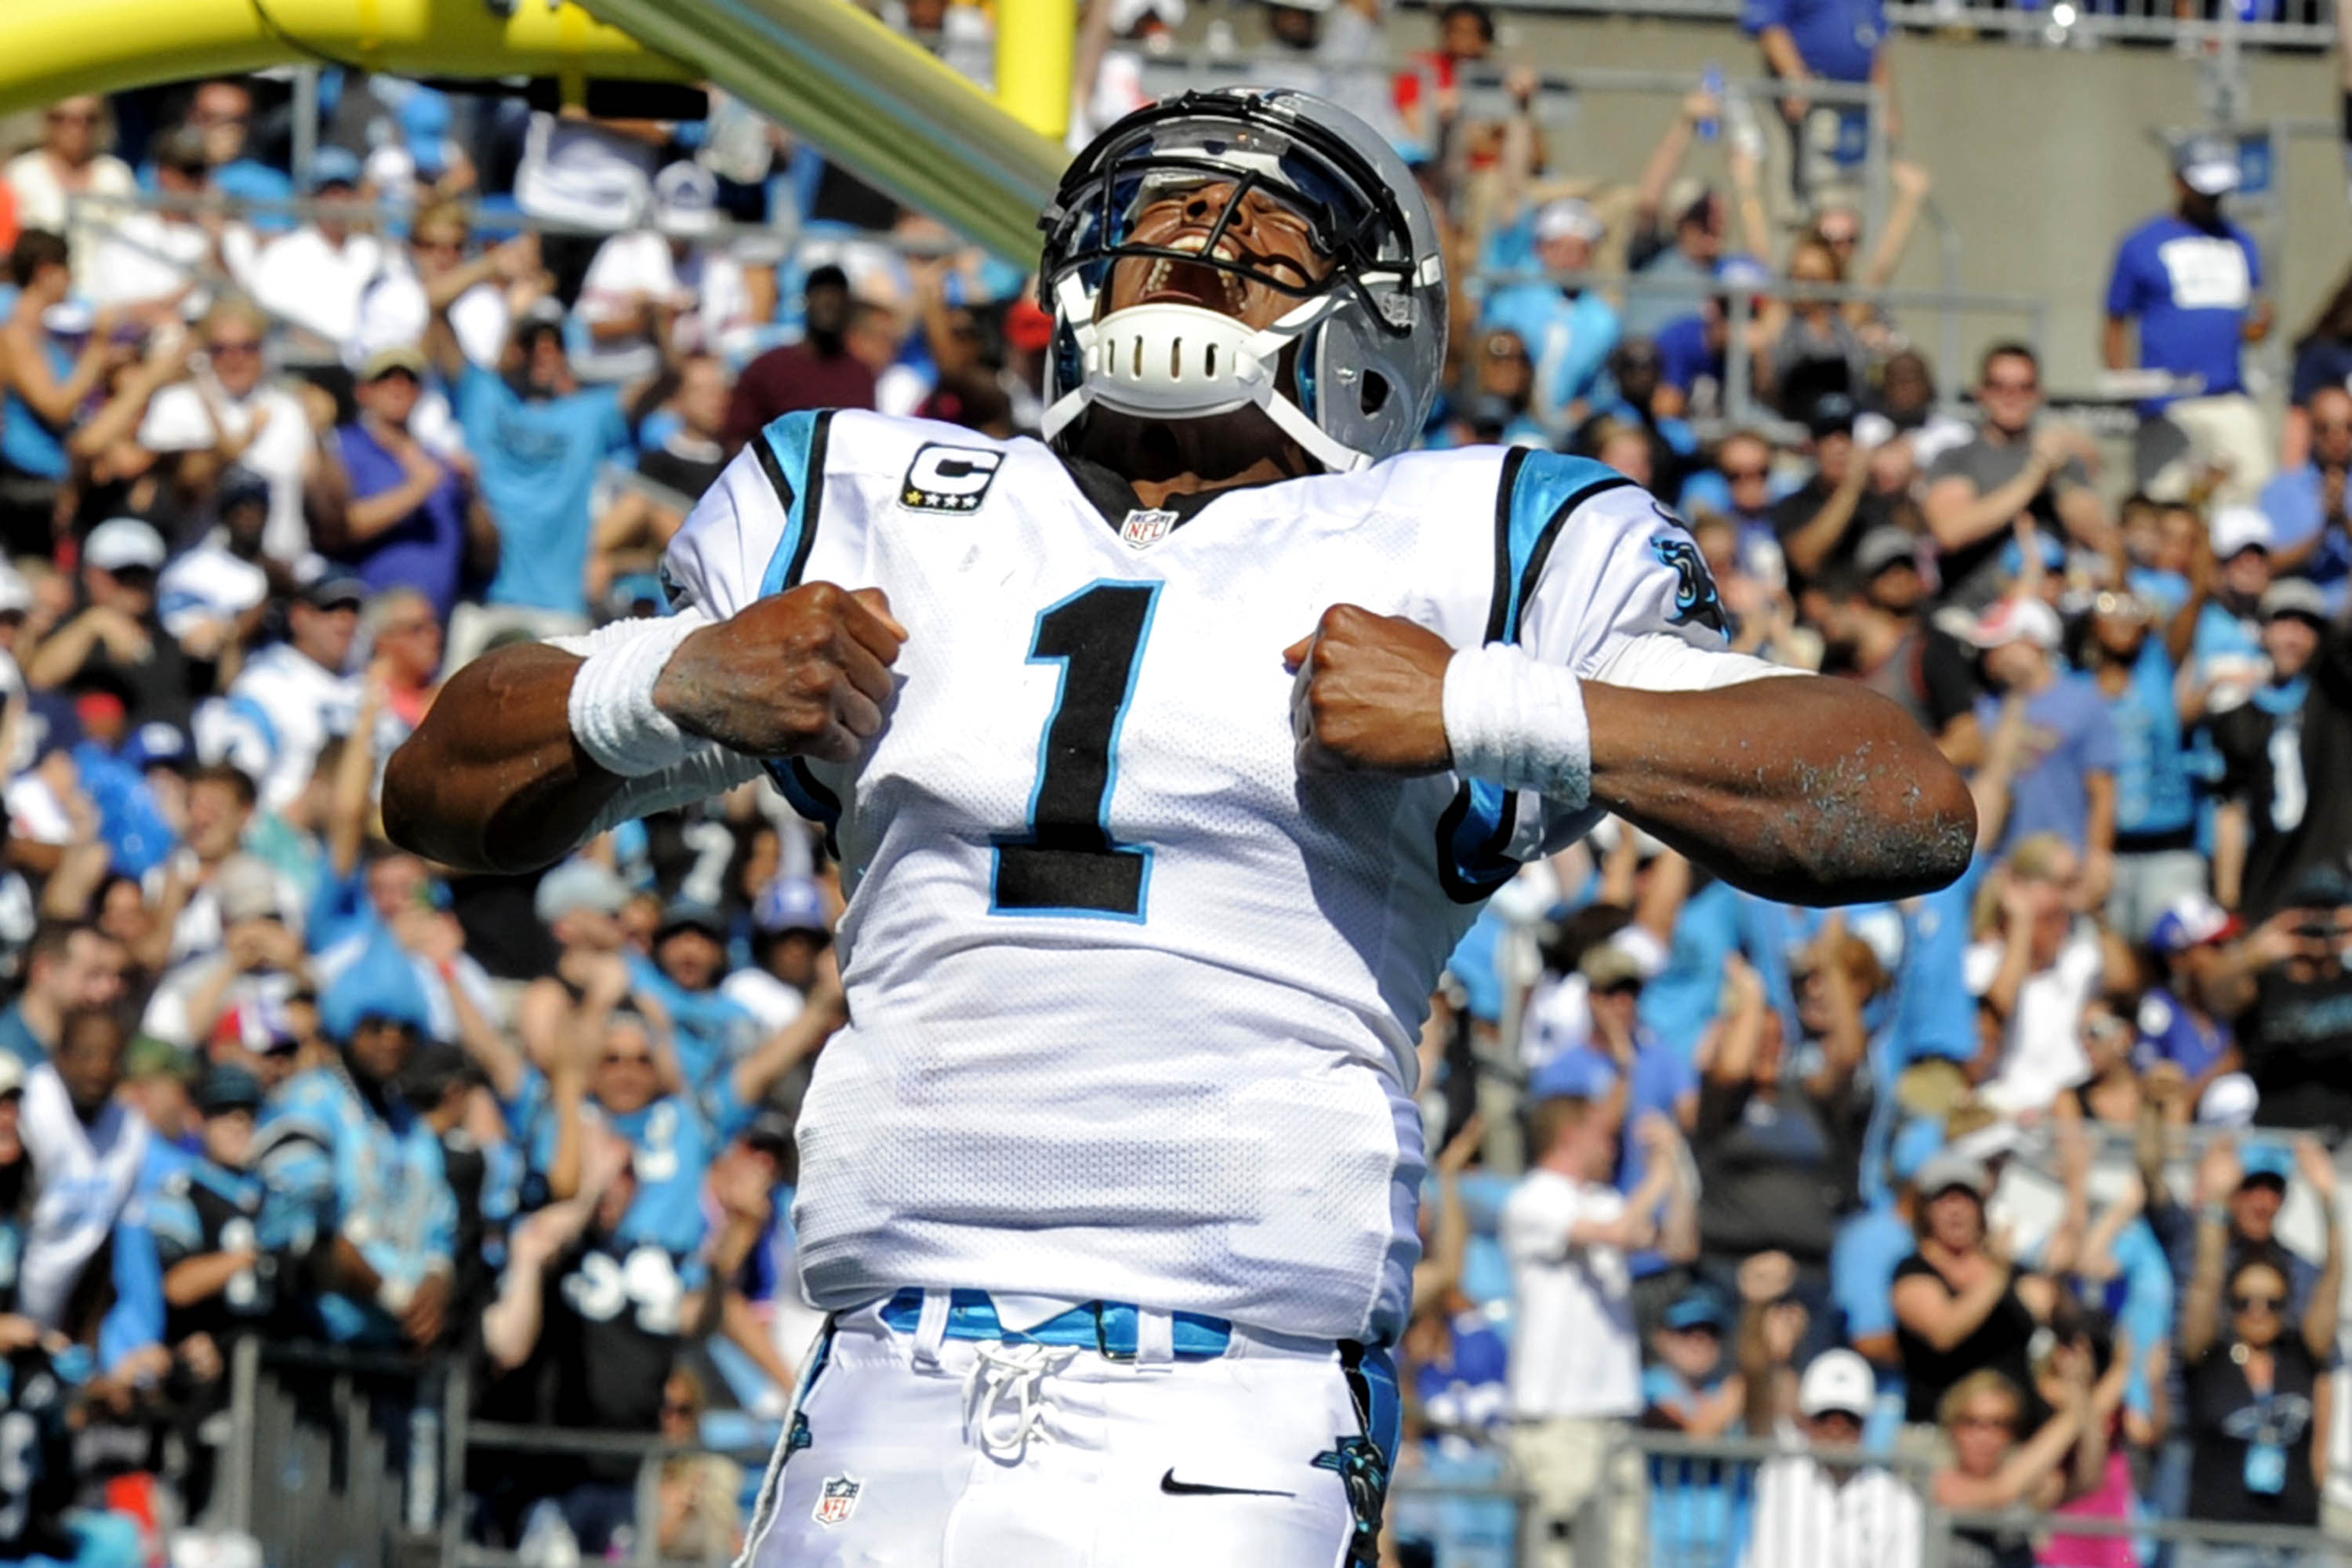 cc2cd4879ccf Carolina Panthers  Cam Newton (1) celebrates his touchdown run against the  New York